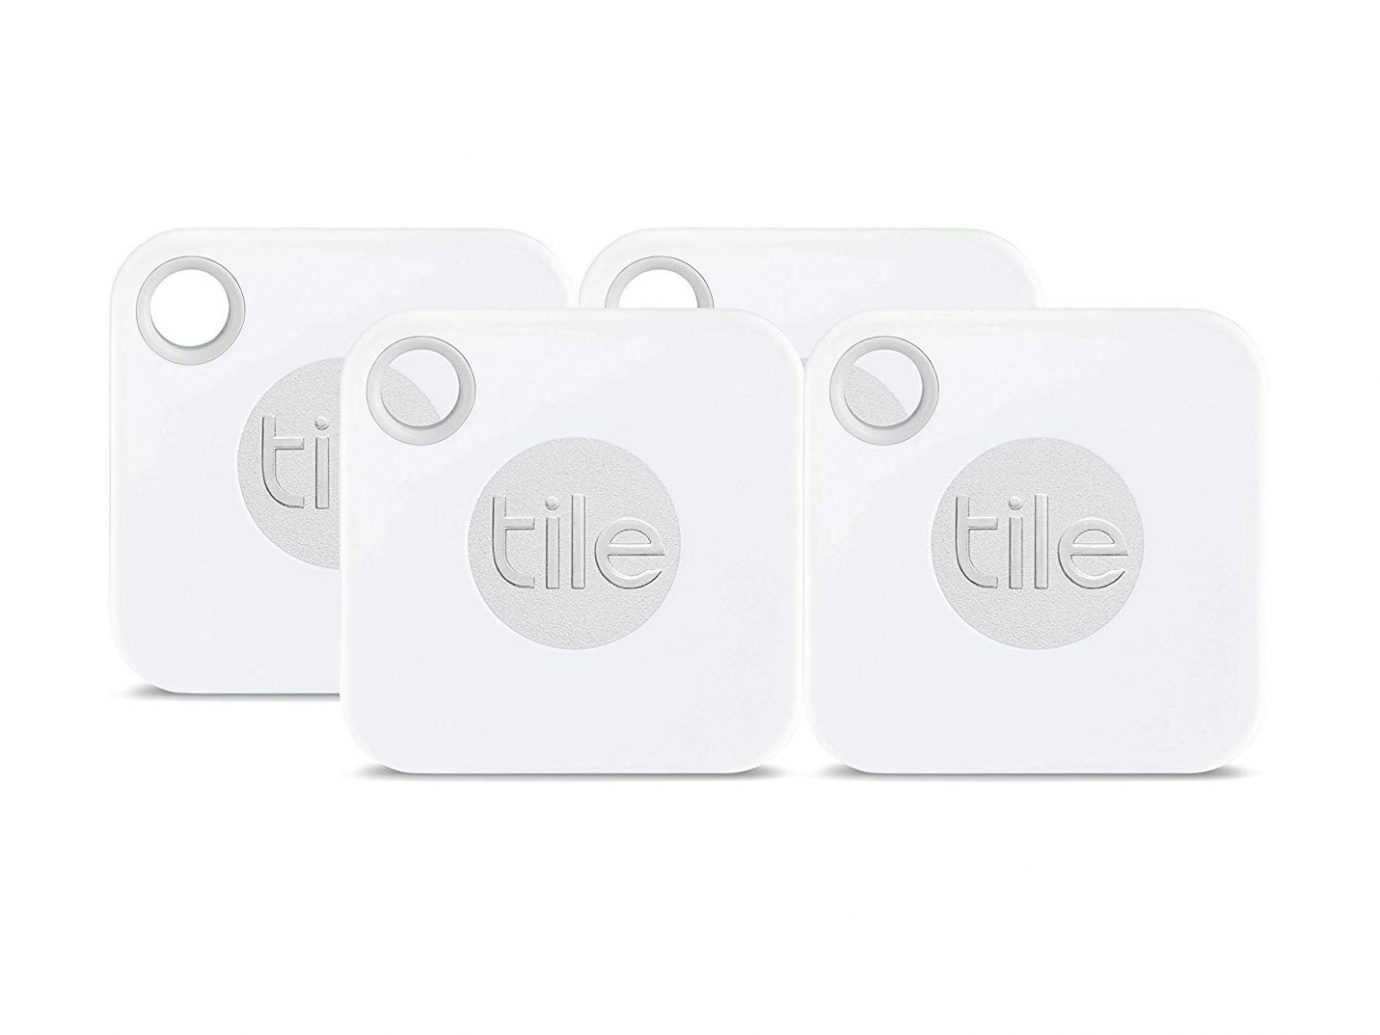 Tile Mate with Replaceable Battery on Amazon